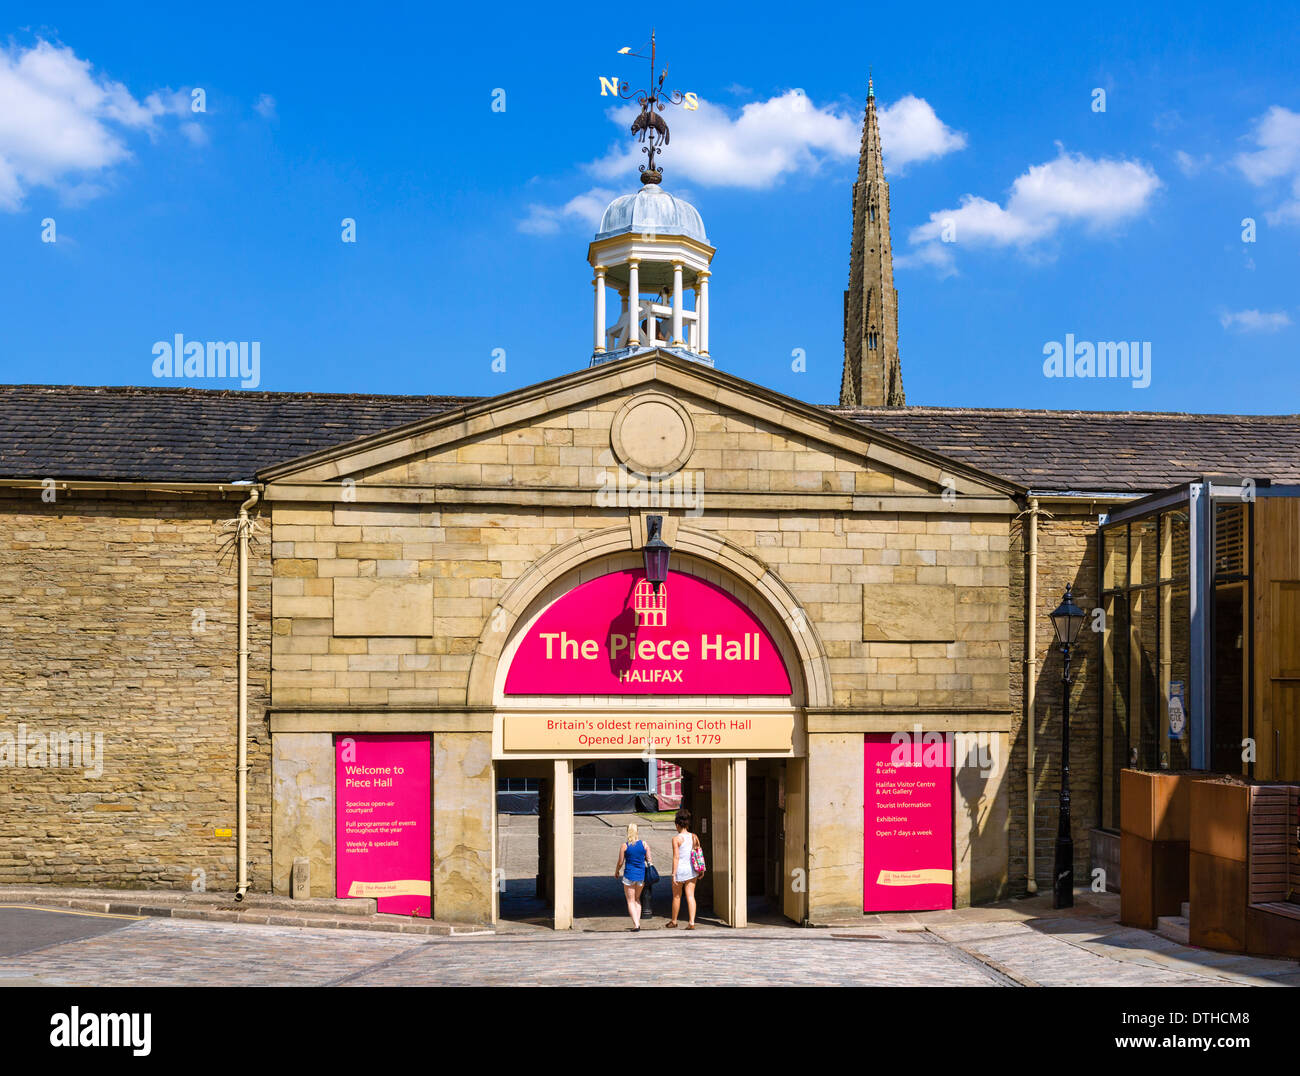 Entrance to the historic 18thC Piece Hall in the centre of Halifax, West Yorkshire, England, UK - Stock Image